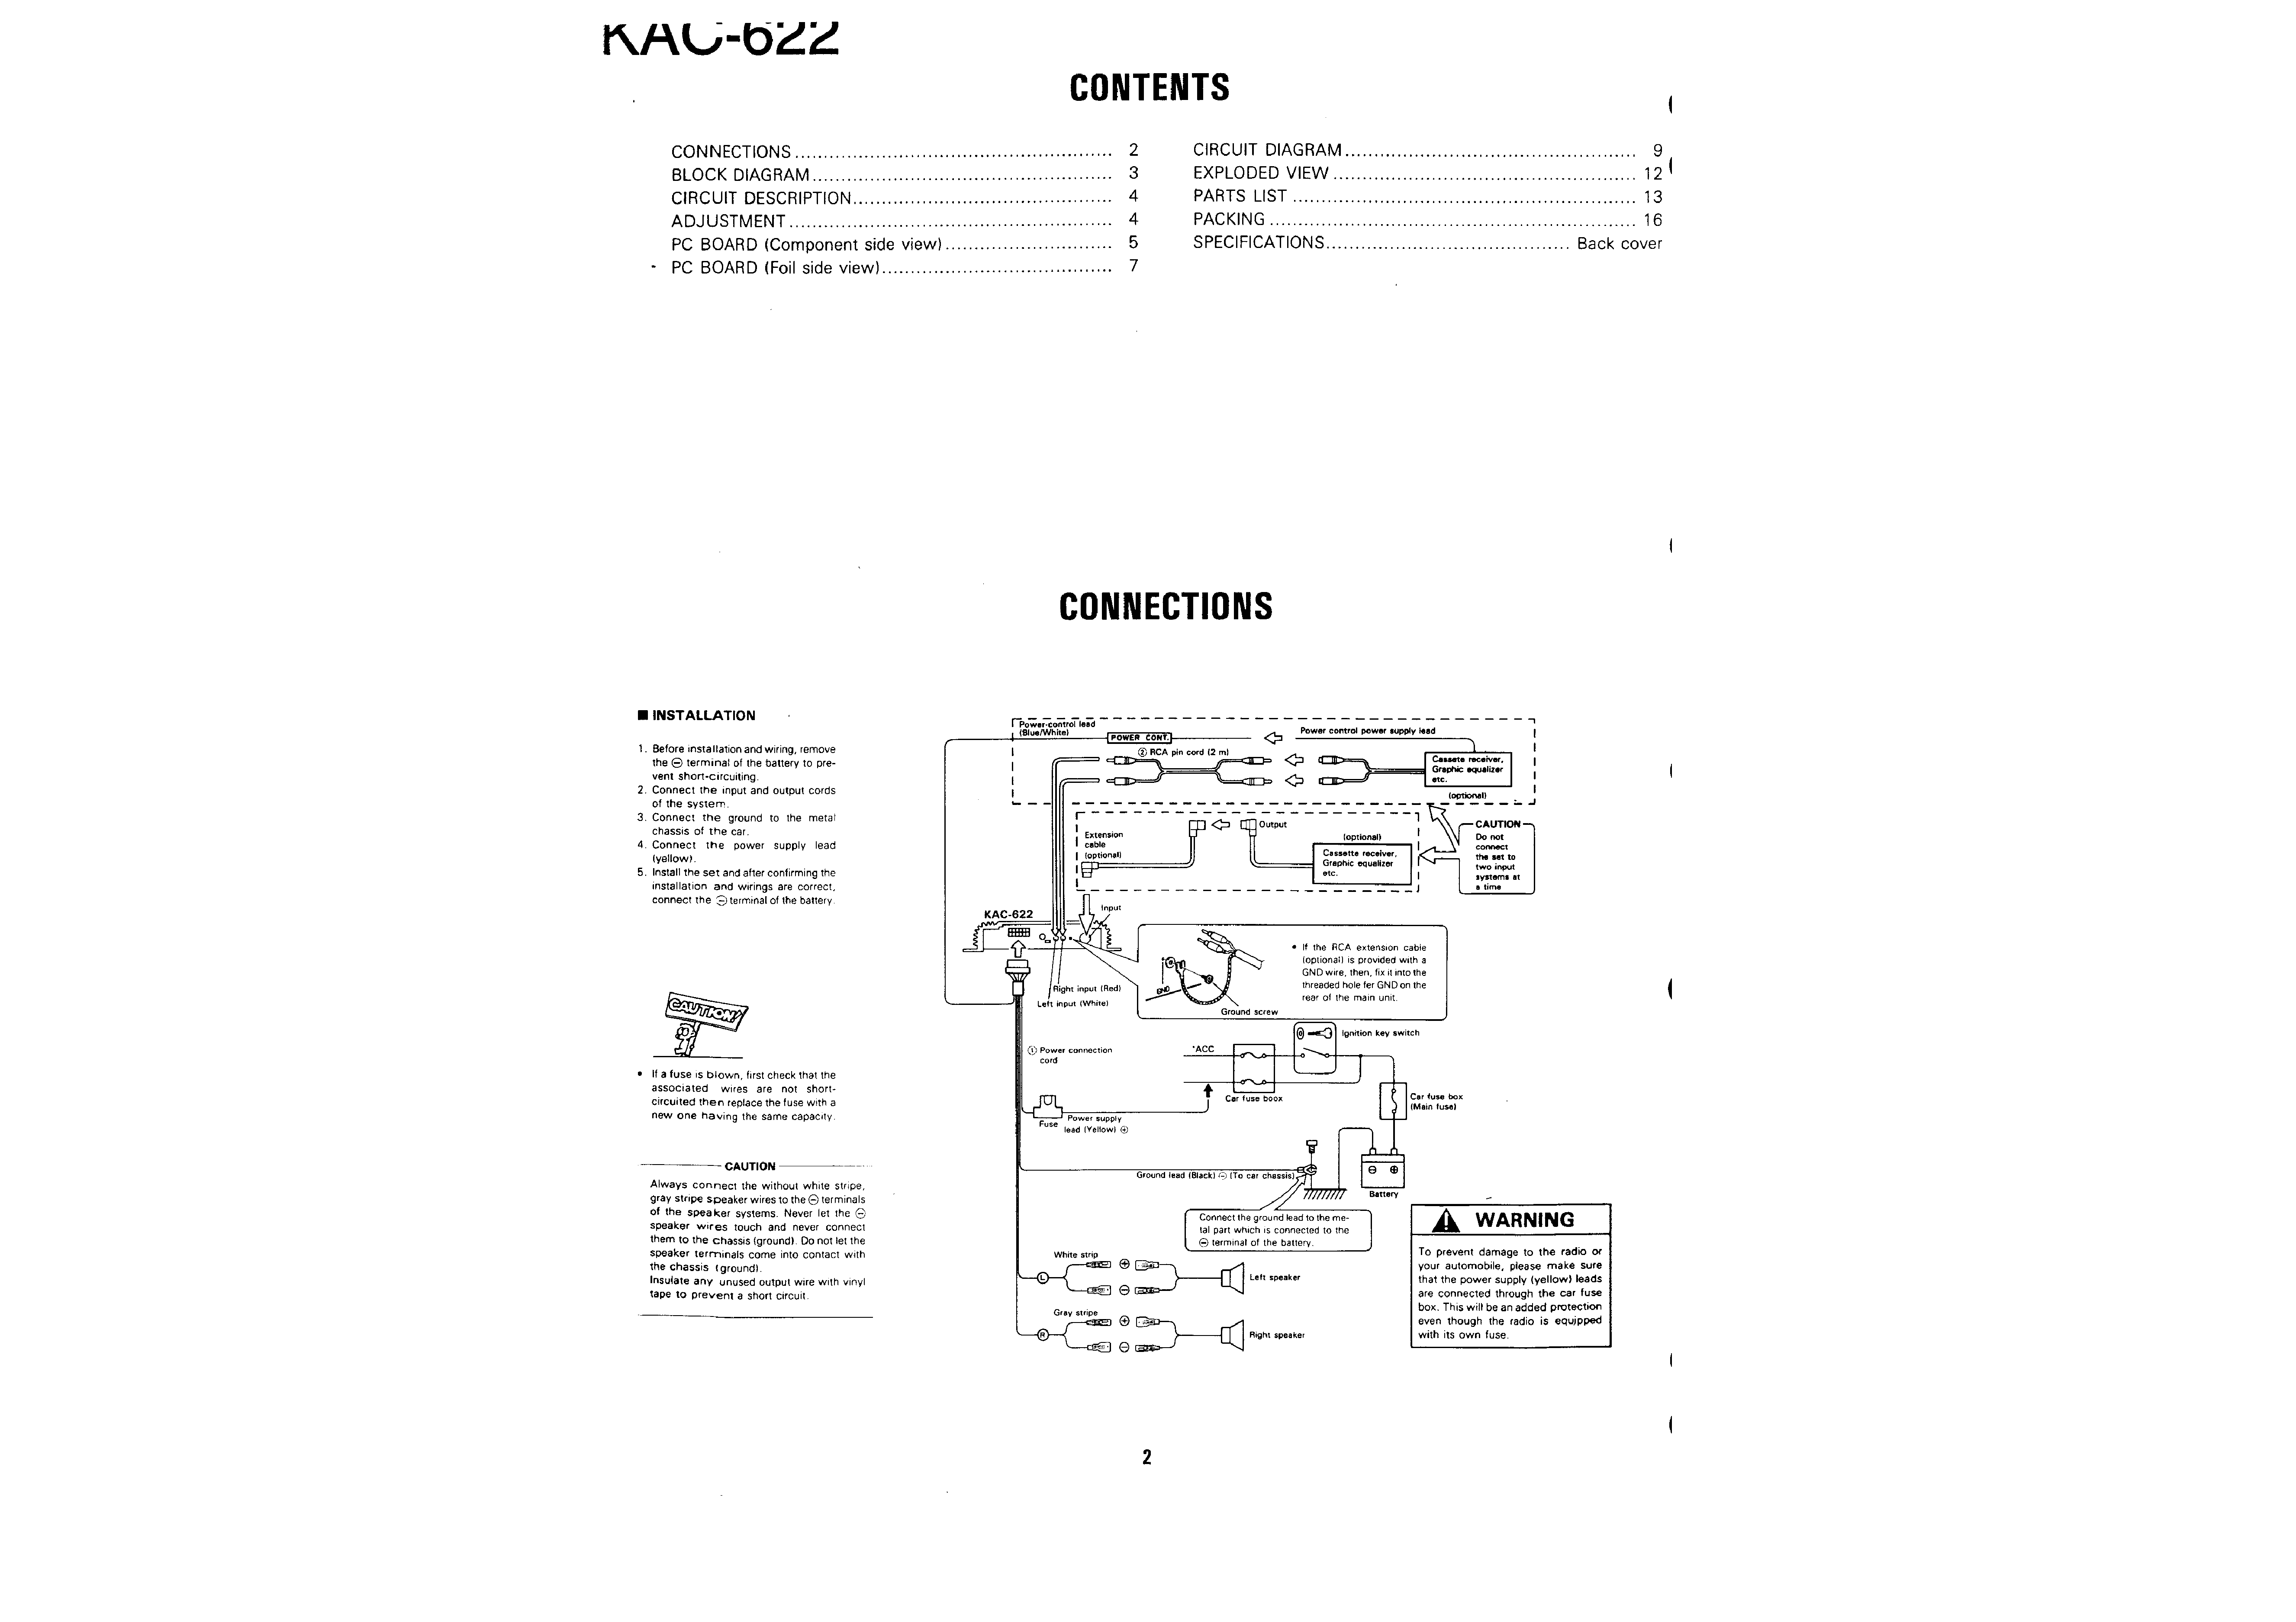 Kenwood Kac 622 Wiring Diagram Great Installation Of Model Kdc Install Simple Diagrams Rh 36 Studio011 De Diagramkdc248u